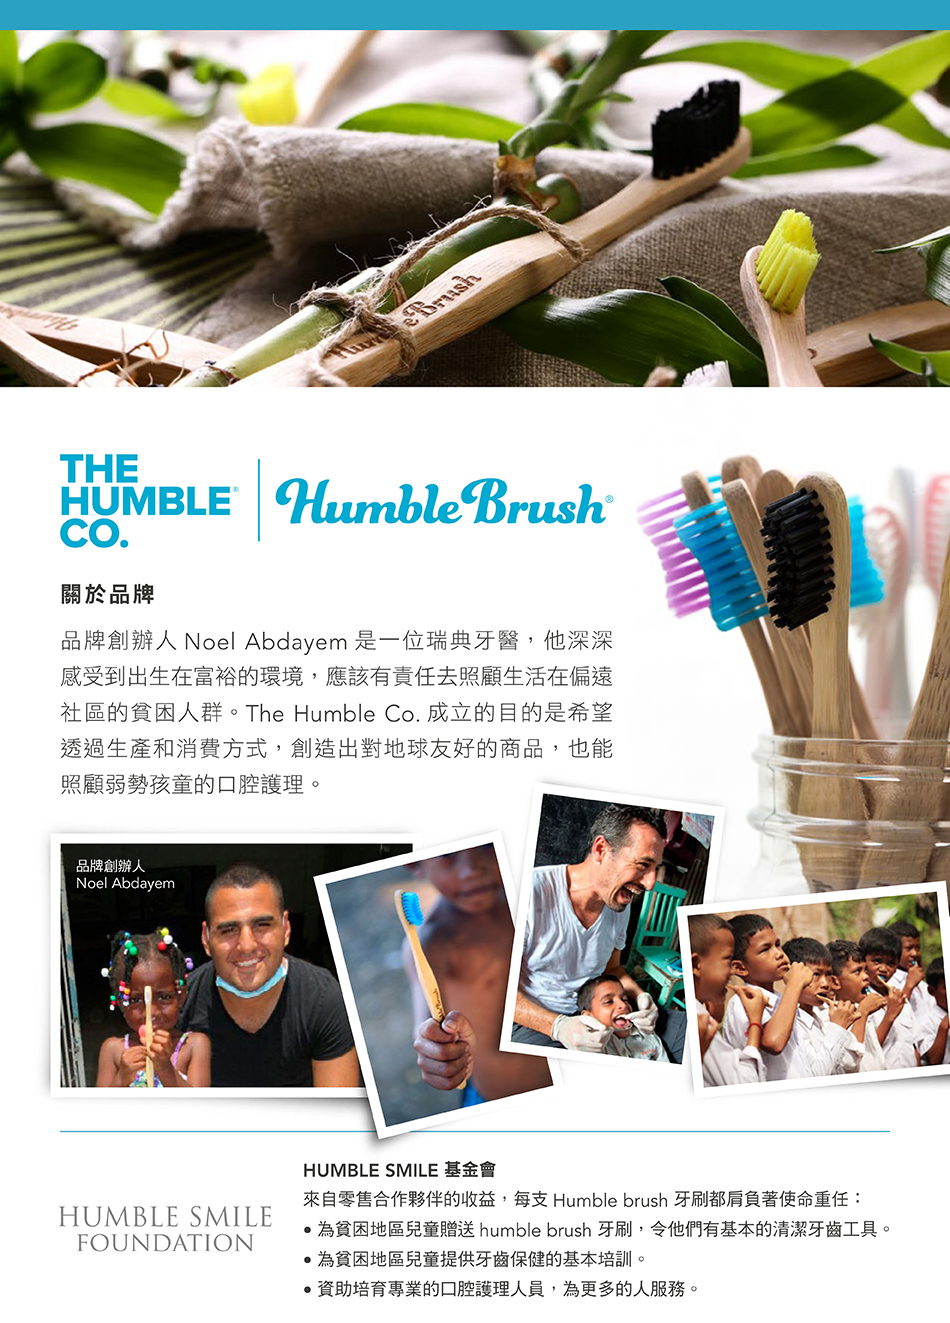 The humble brush-1.jpg